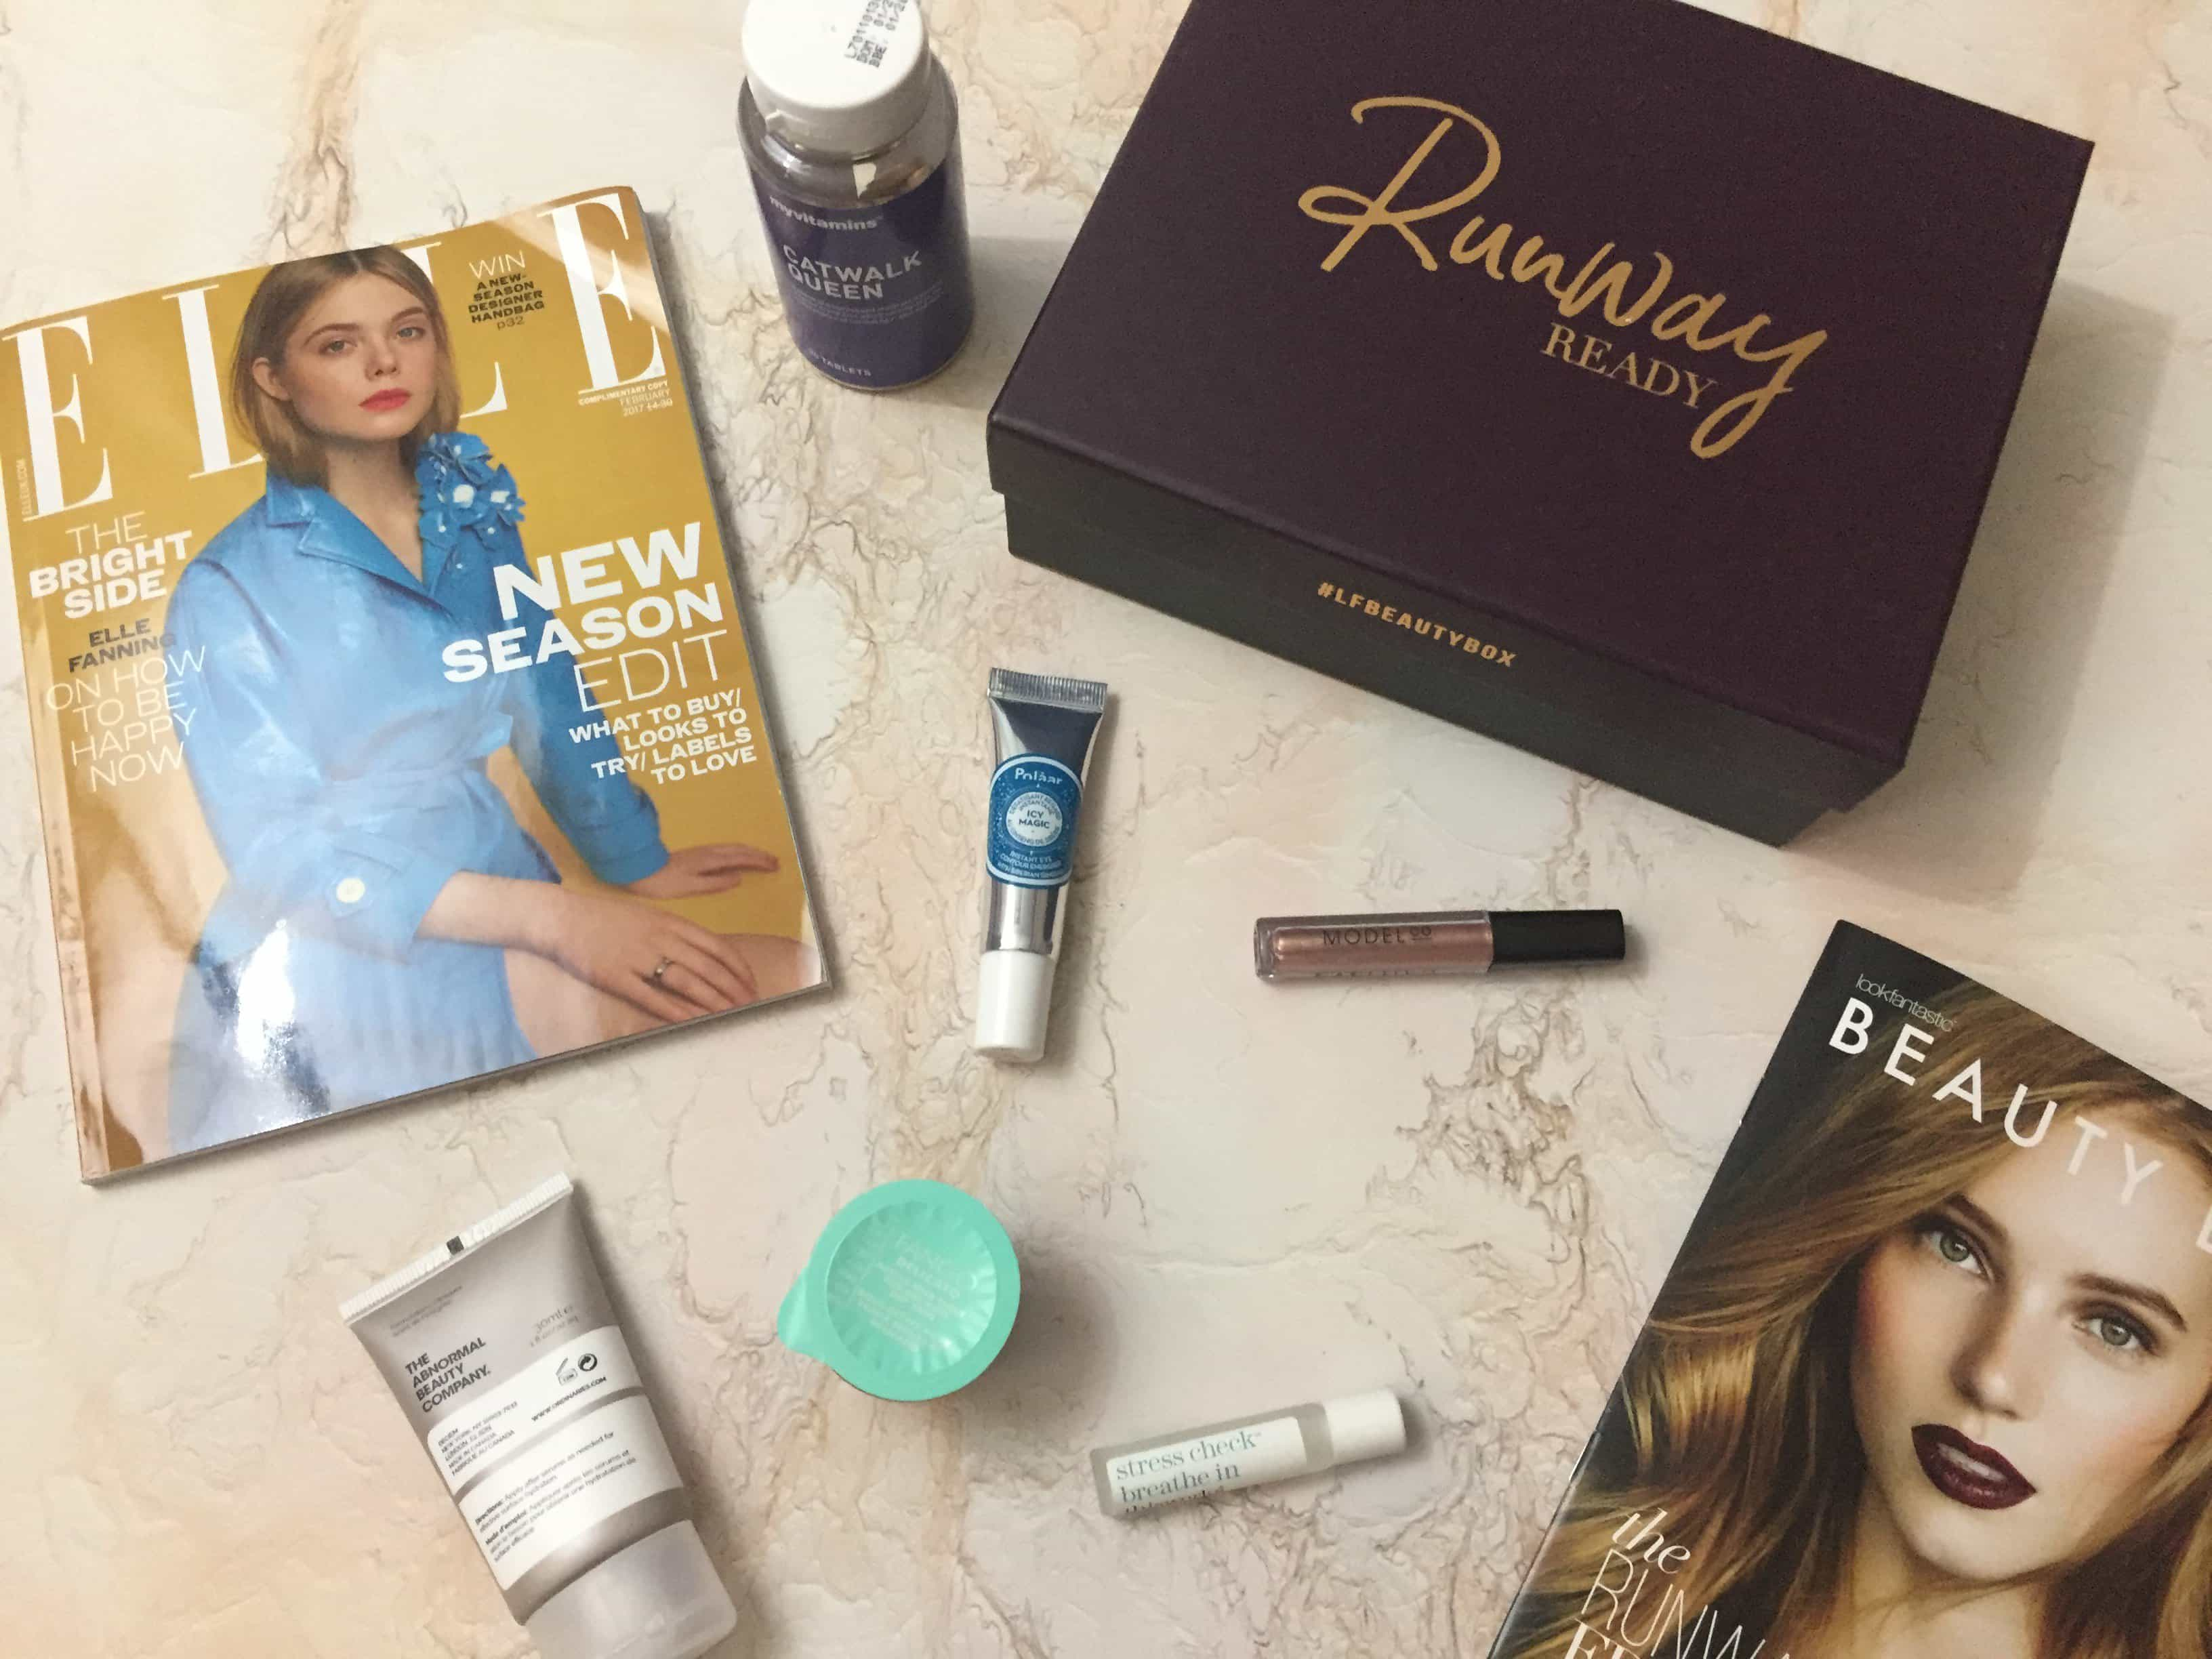 Look Fantastic Is A Uk Subscription Box That Sends 6 Hand Picked Beauty Products Including Hair Care Skincare And Cosmetics From Eve Lom To Korres